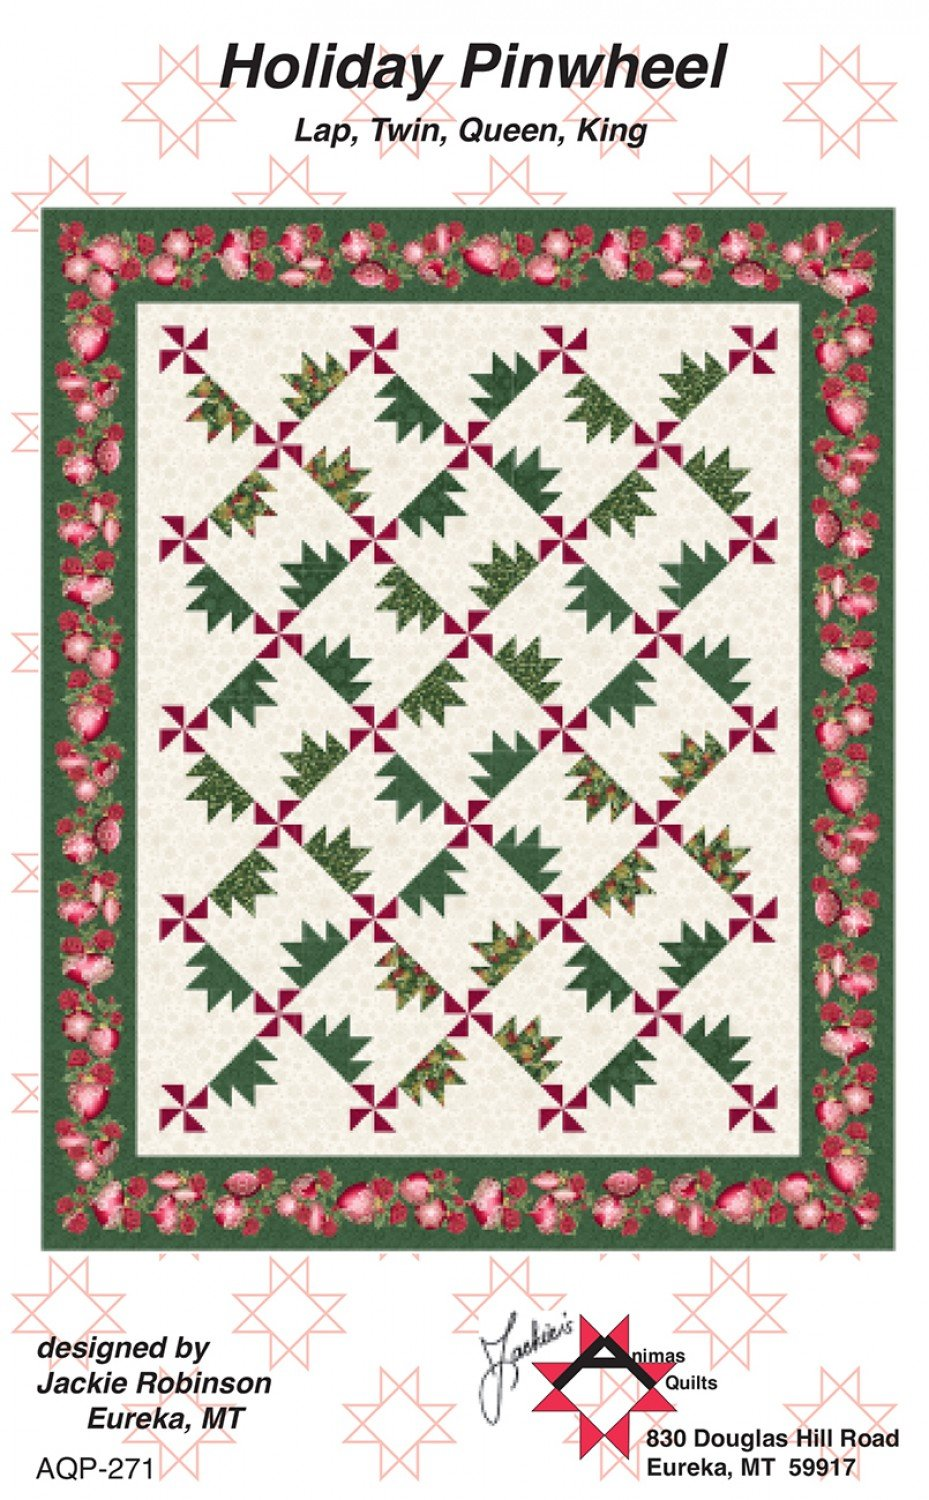 Holiday Pinwheel Pattern from Jackie Robinson of Animas Quilts